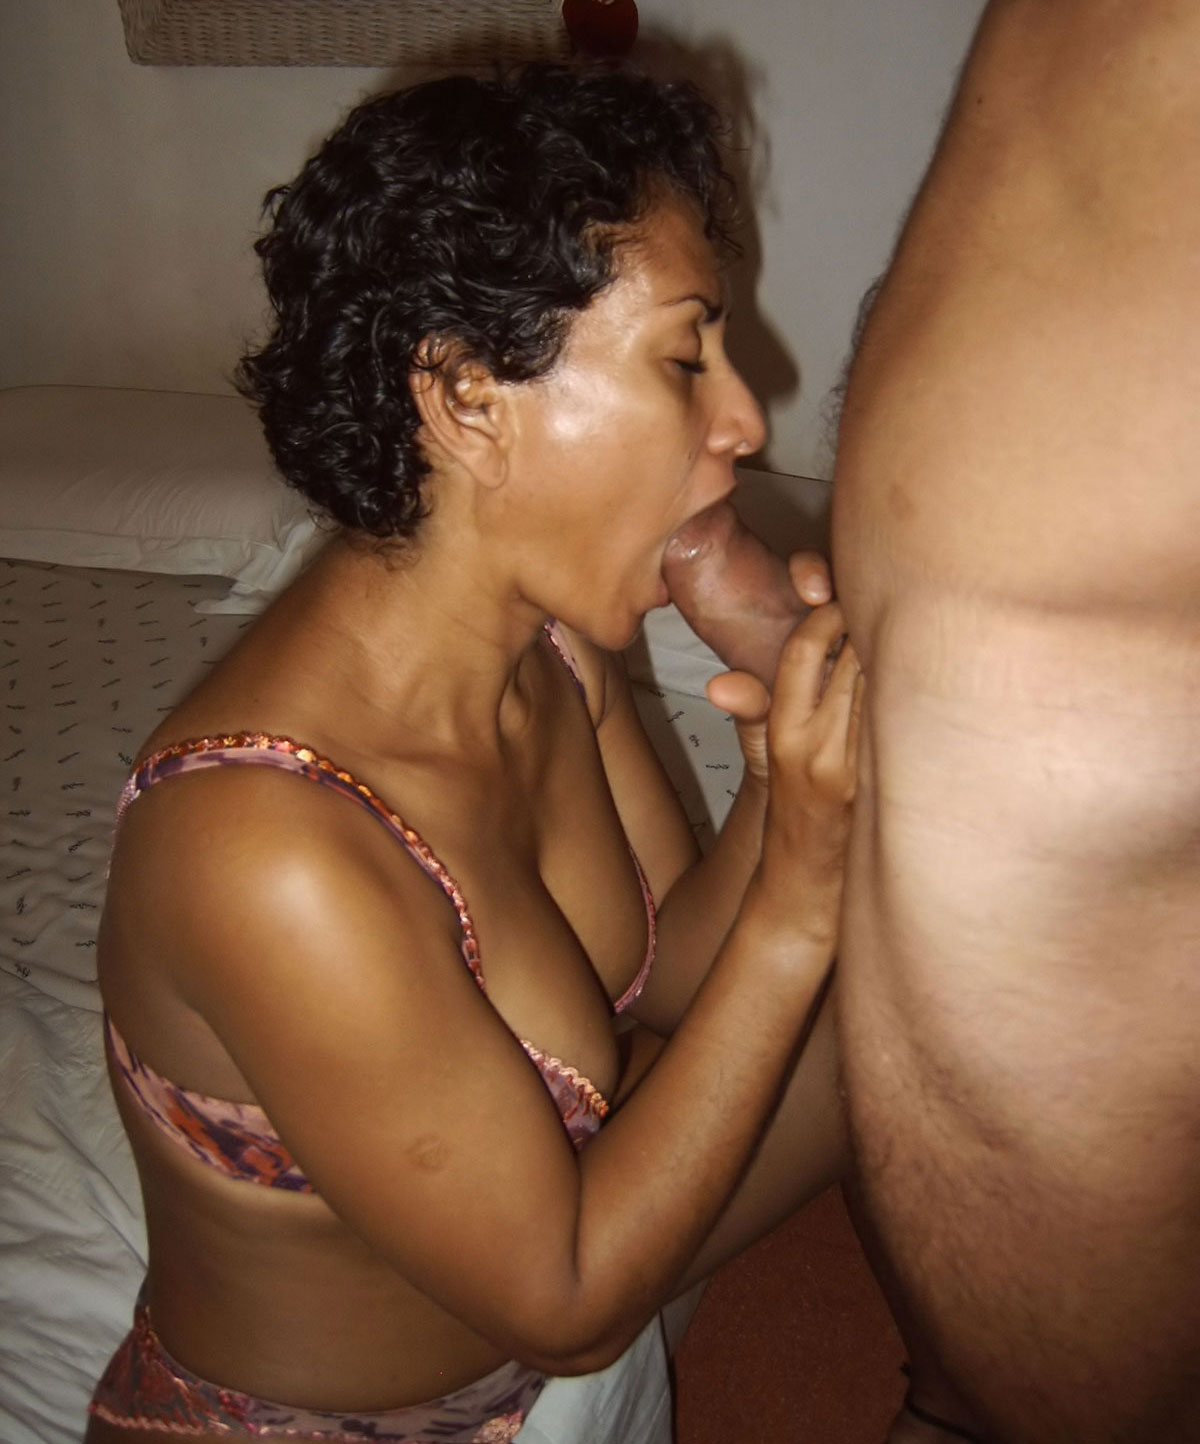 Sucking dick Indian nude women